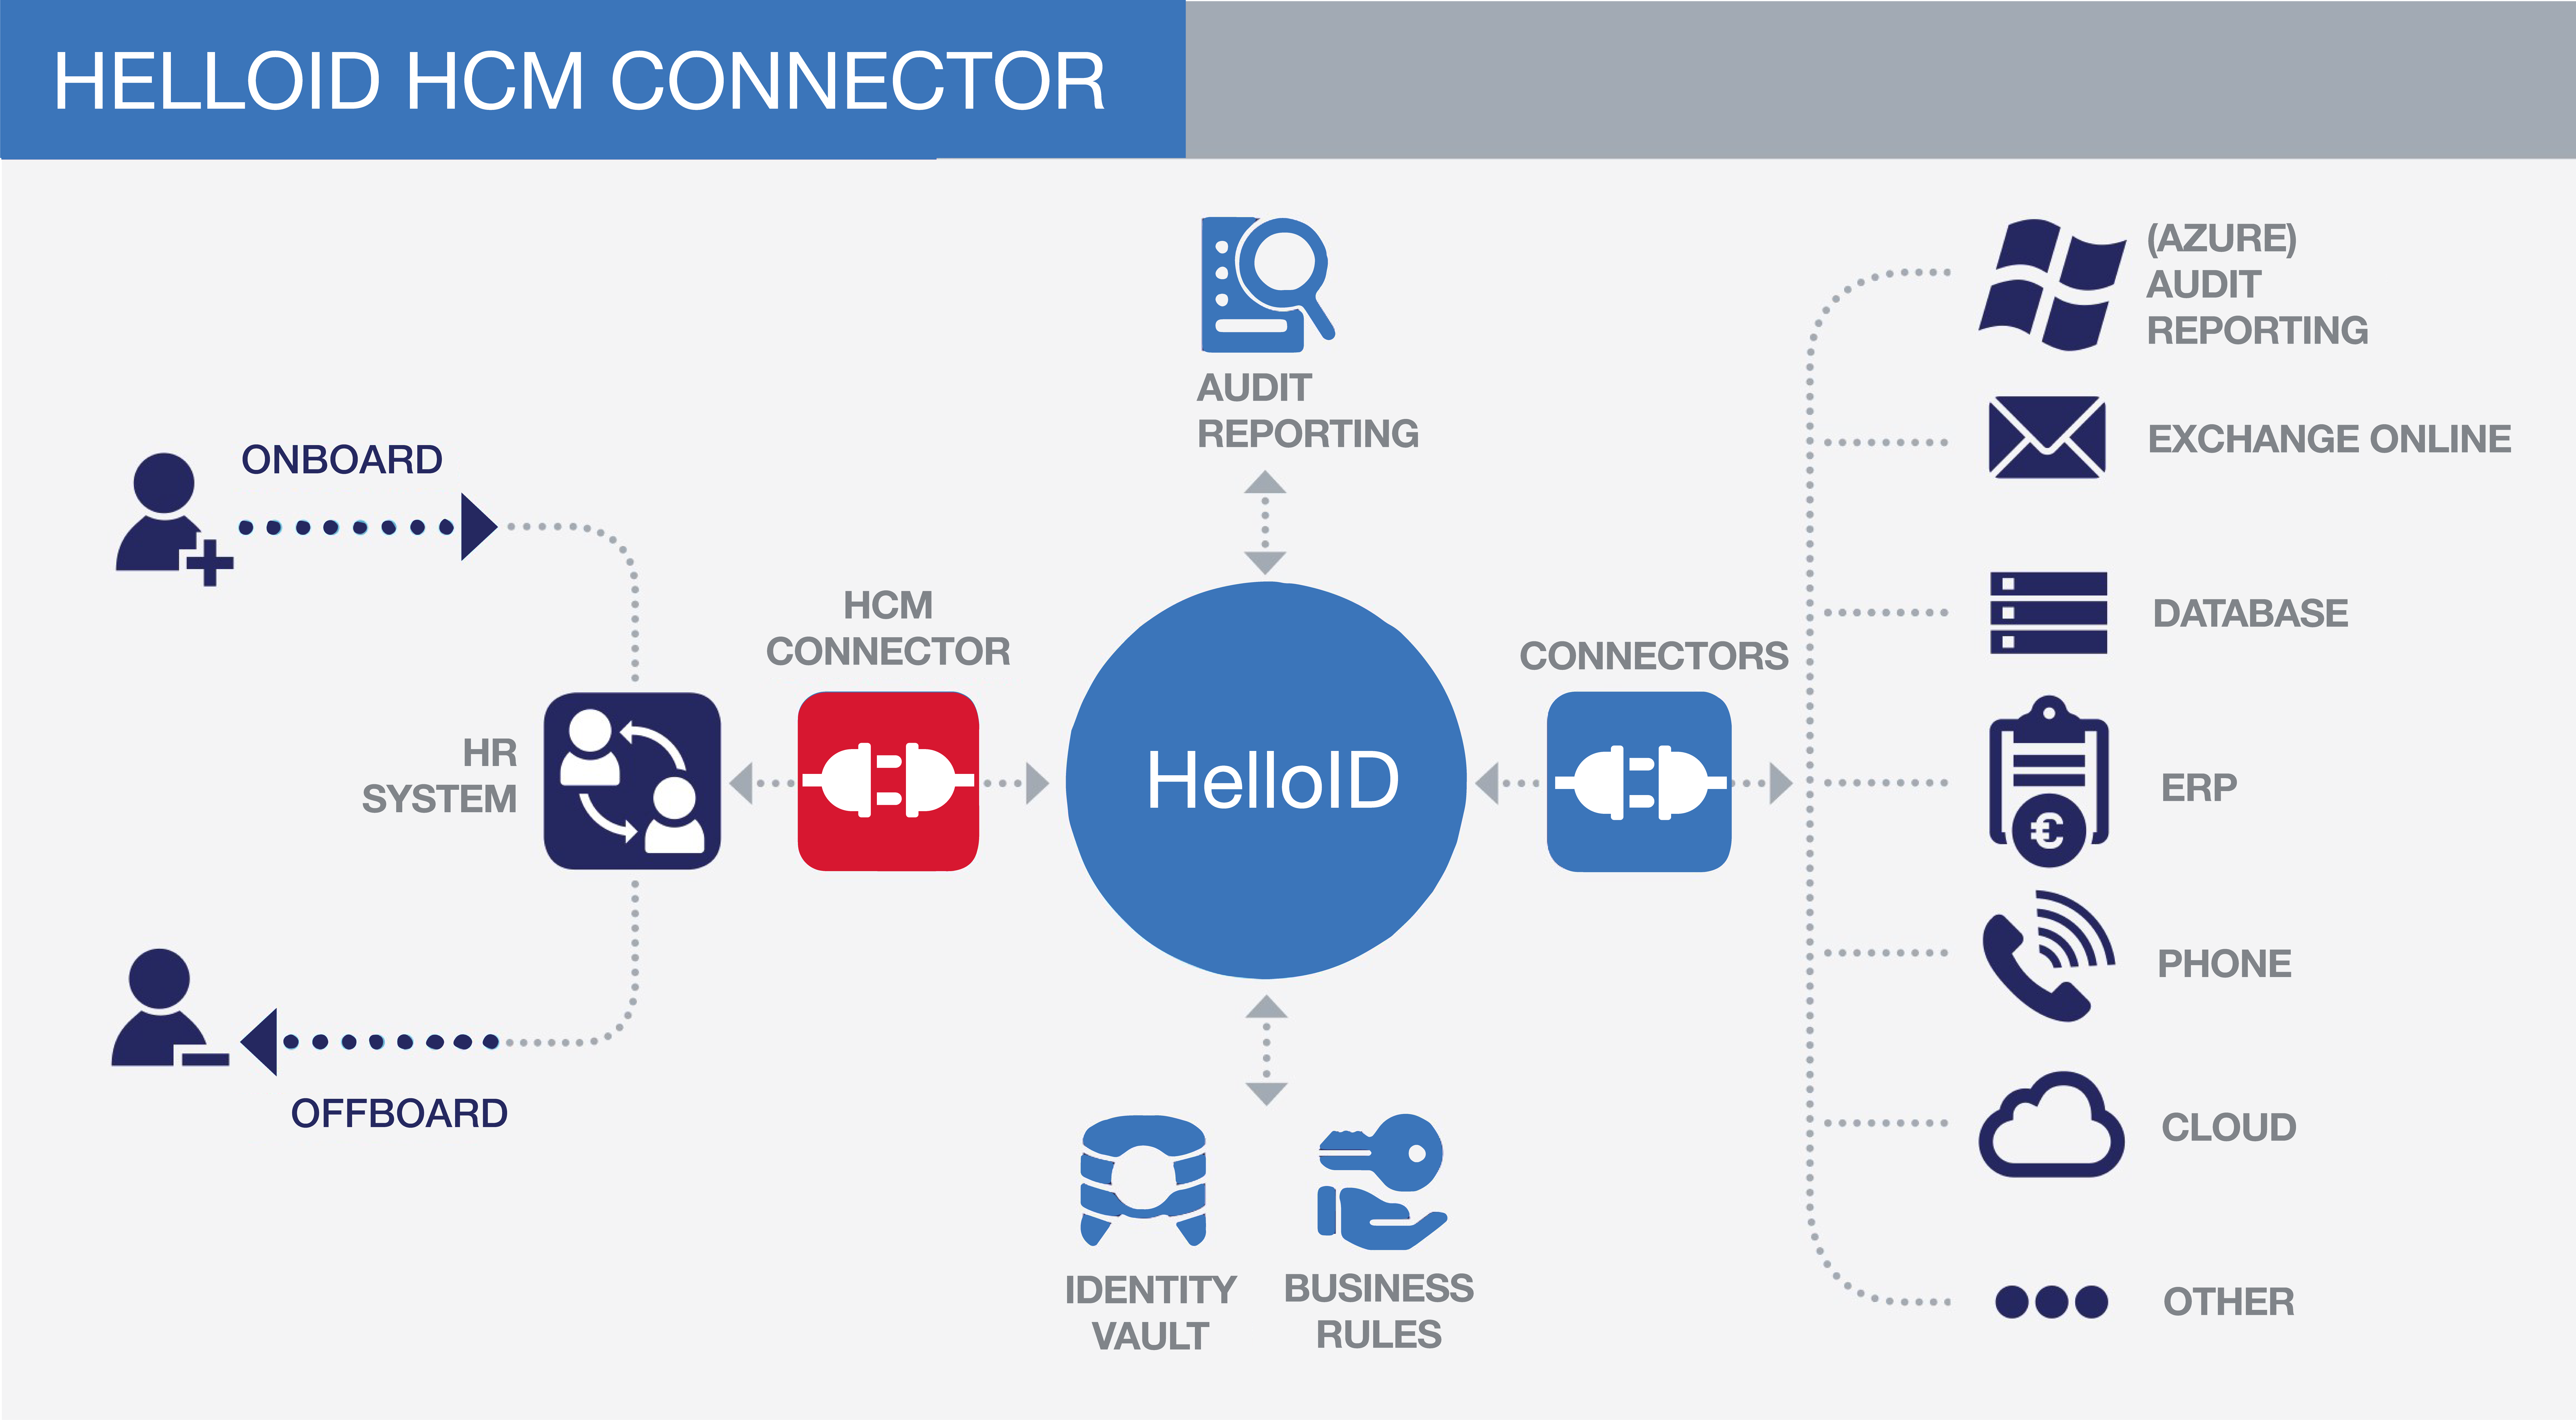 hcm connector identity management